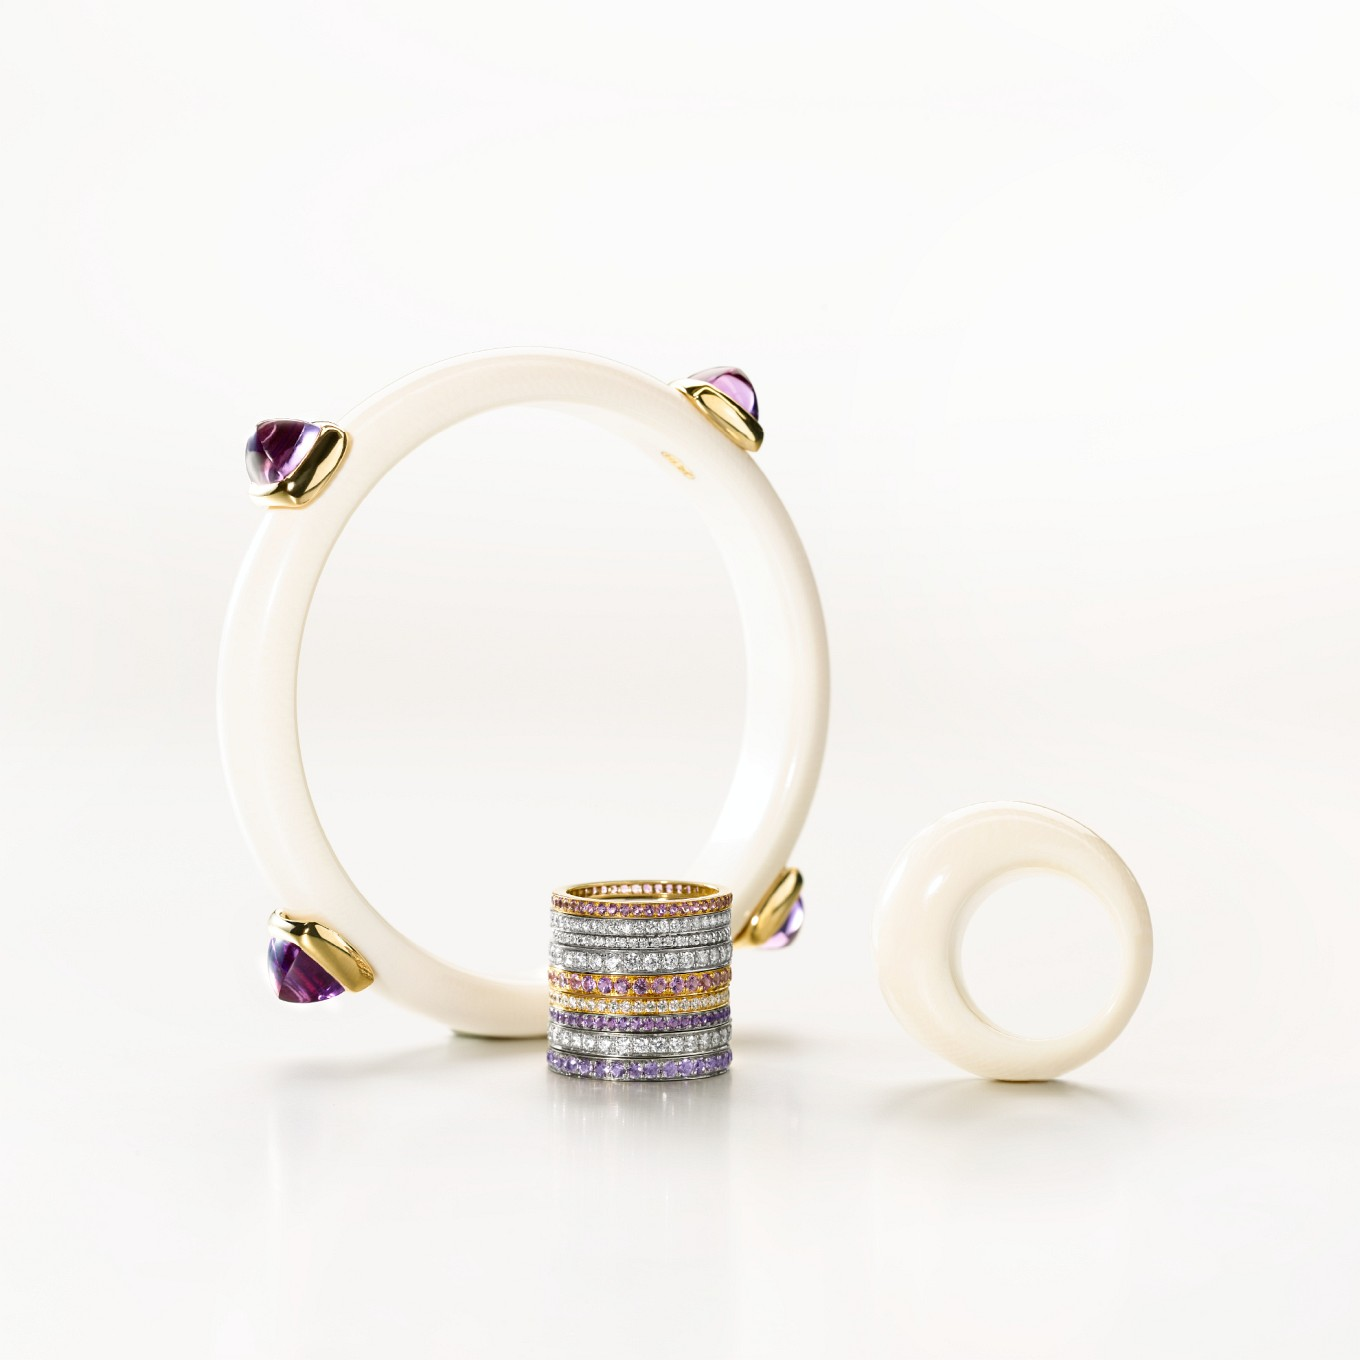 MAMMOTH TUSK & AMETHYST BANGLE IN YELLOW GOLD. DIAMOND & FANCY SAPPHIRE STACKING RINGS, MAMMOTH TUSK RING